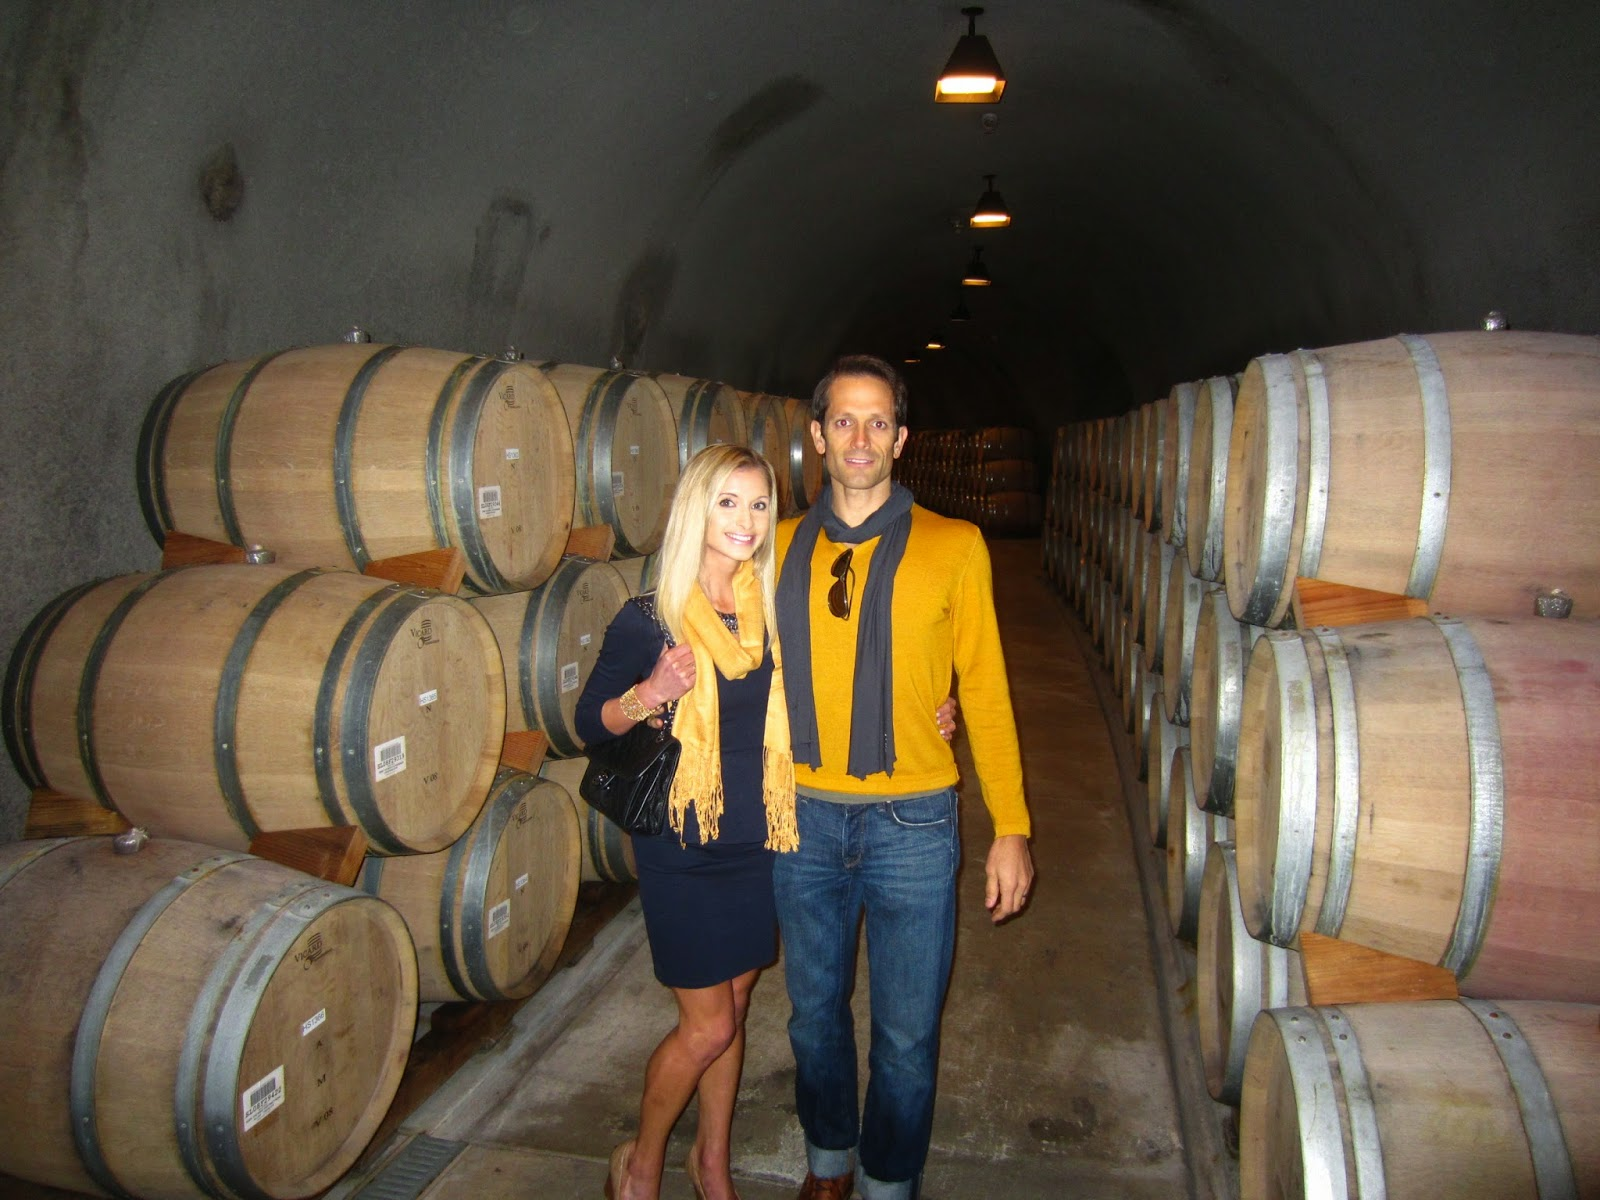 ... Italy (with 26 generations of winemaking experience) joined a partnership with Chateau St Michelle Wine Estates and purchased Stagu0027s Leap Wine Cellars.  sc 1 st  Decantress Wine Diary & Decantress Wine Diary: No Bottleshock u2013 Stagu0027s Leap Cellars Opens ...